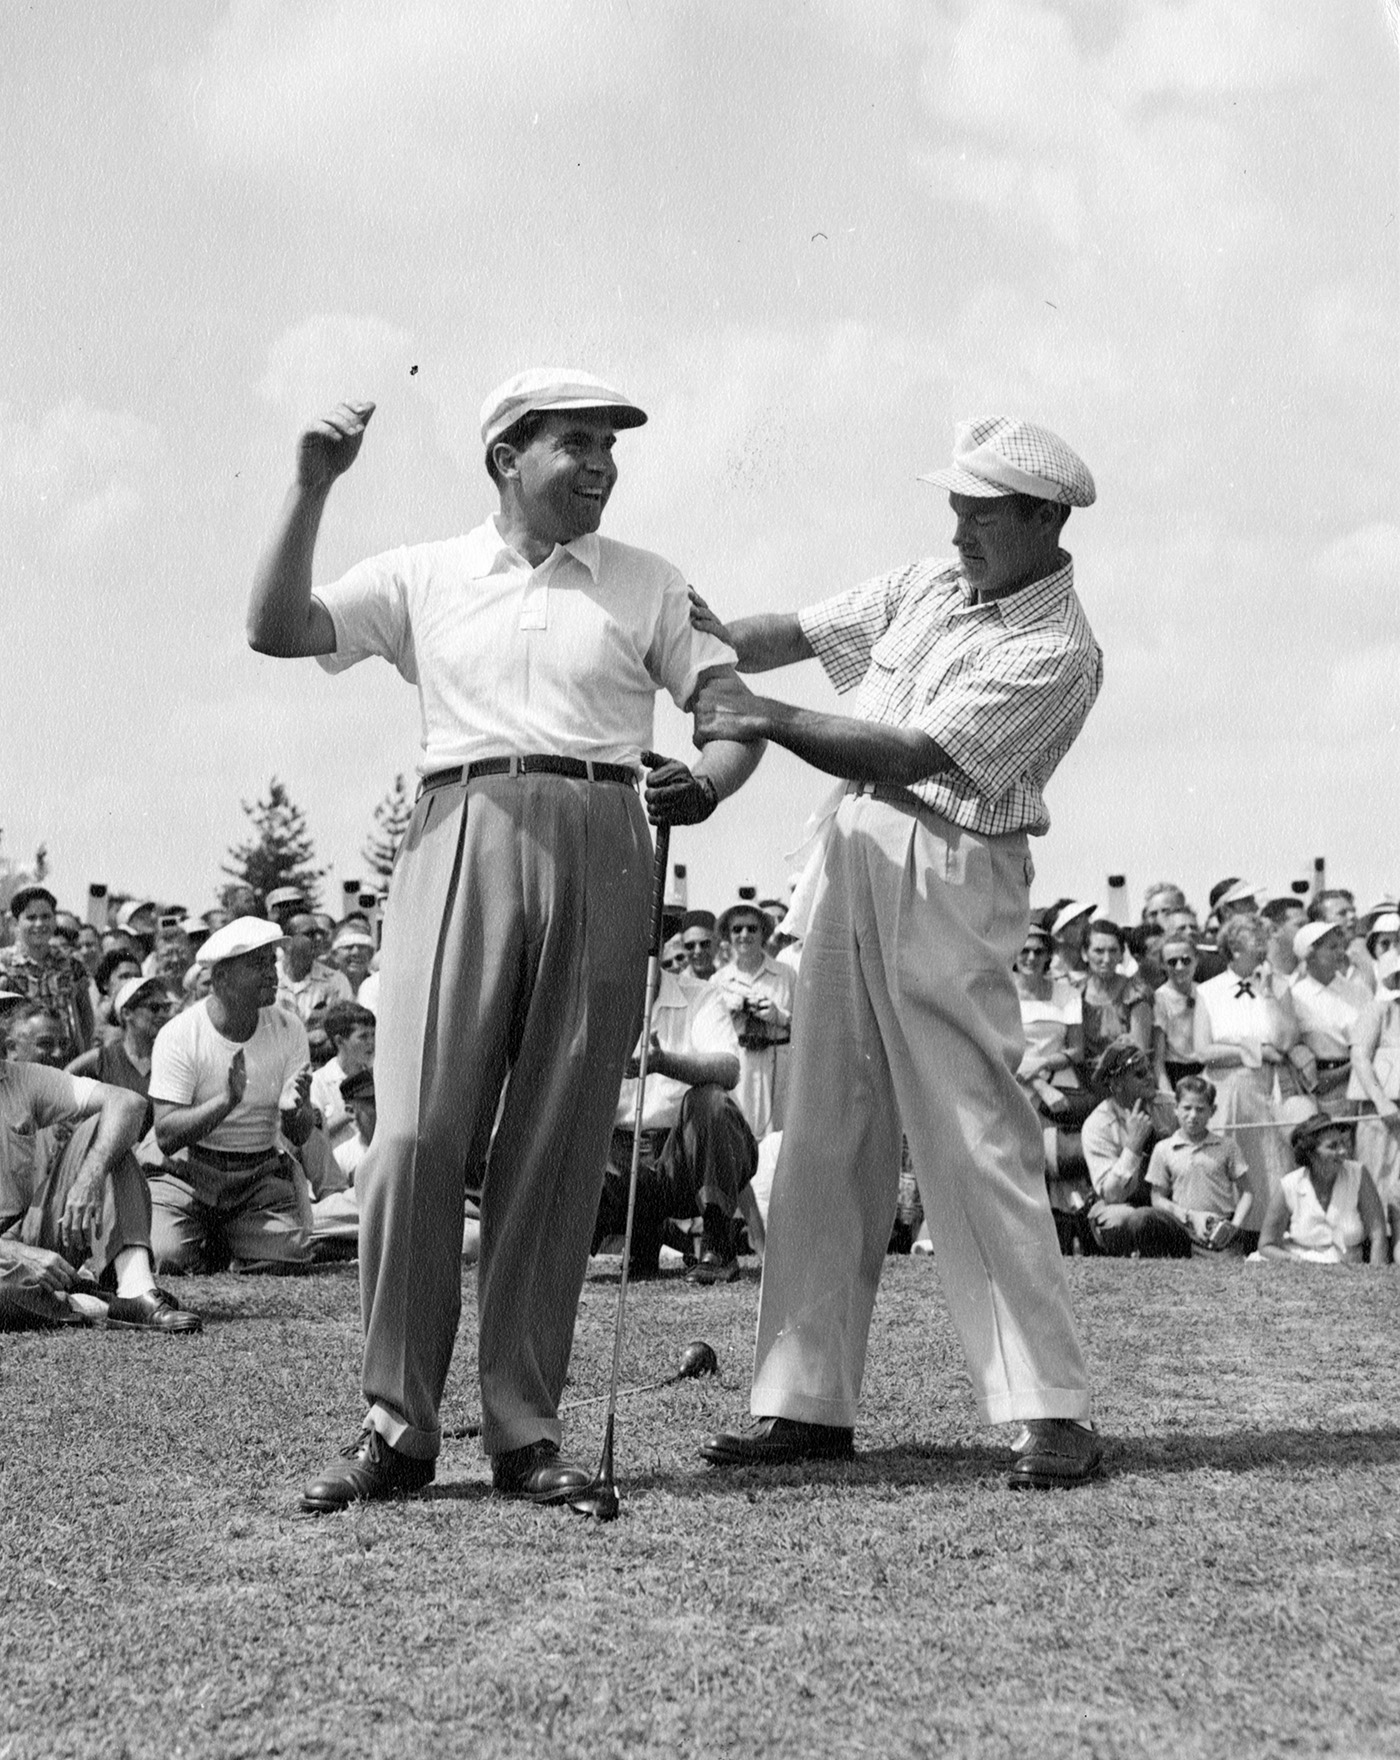 Richard Nixon Bob Hope golf again